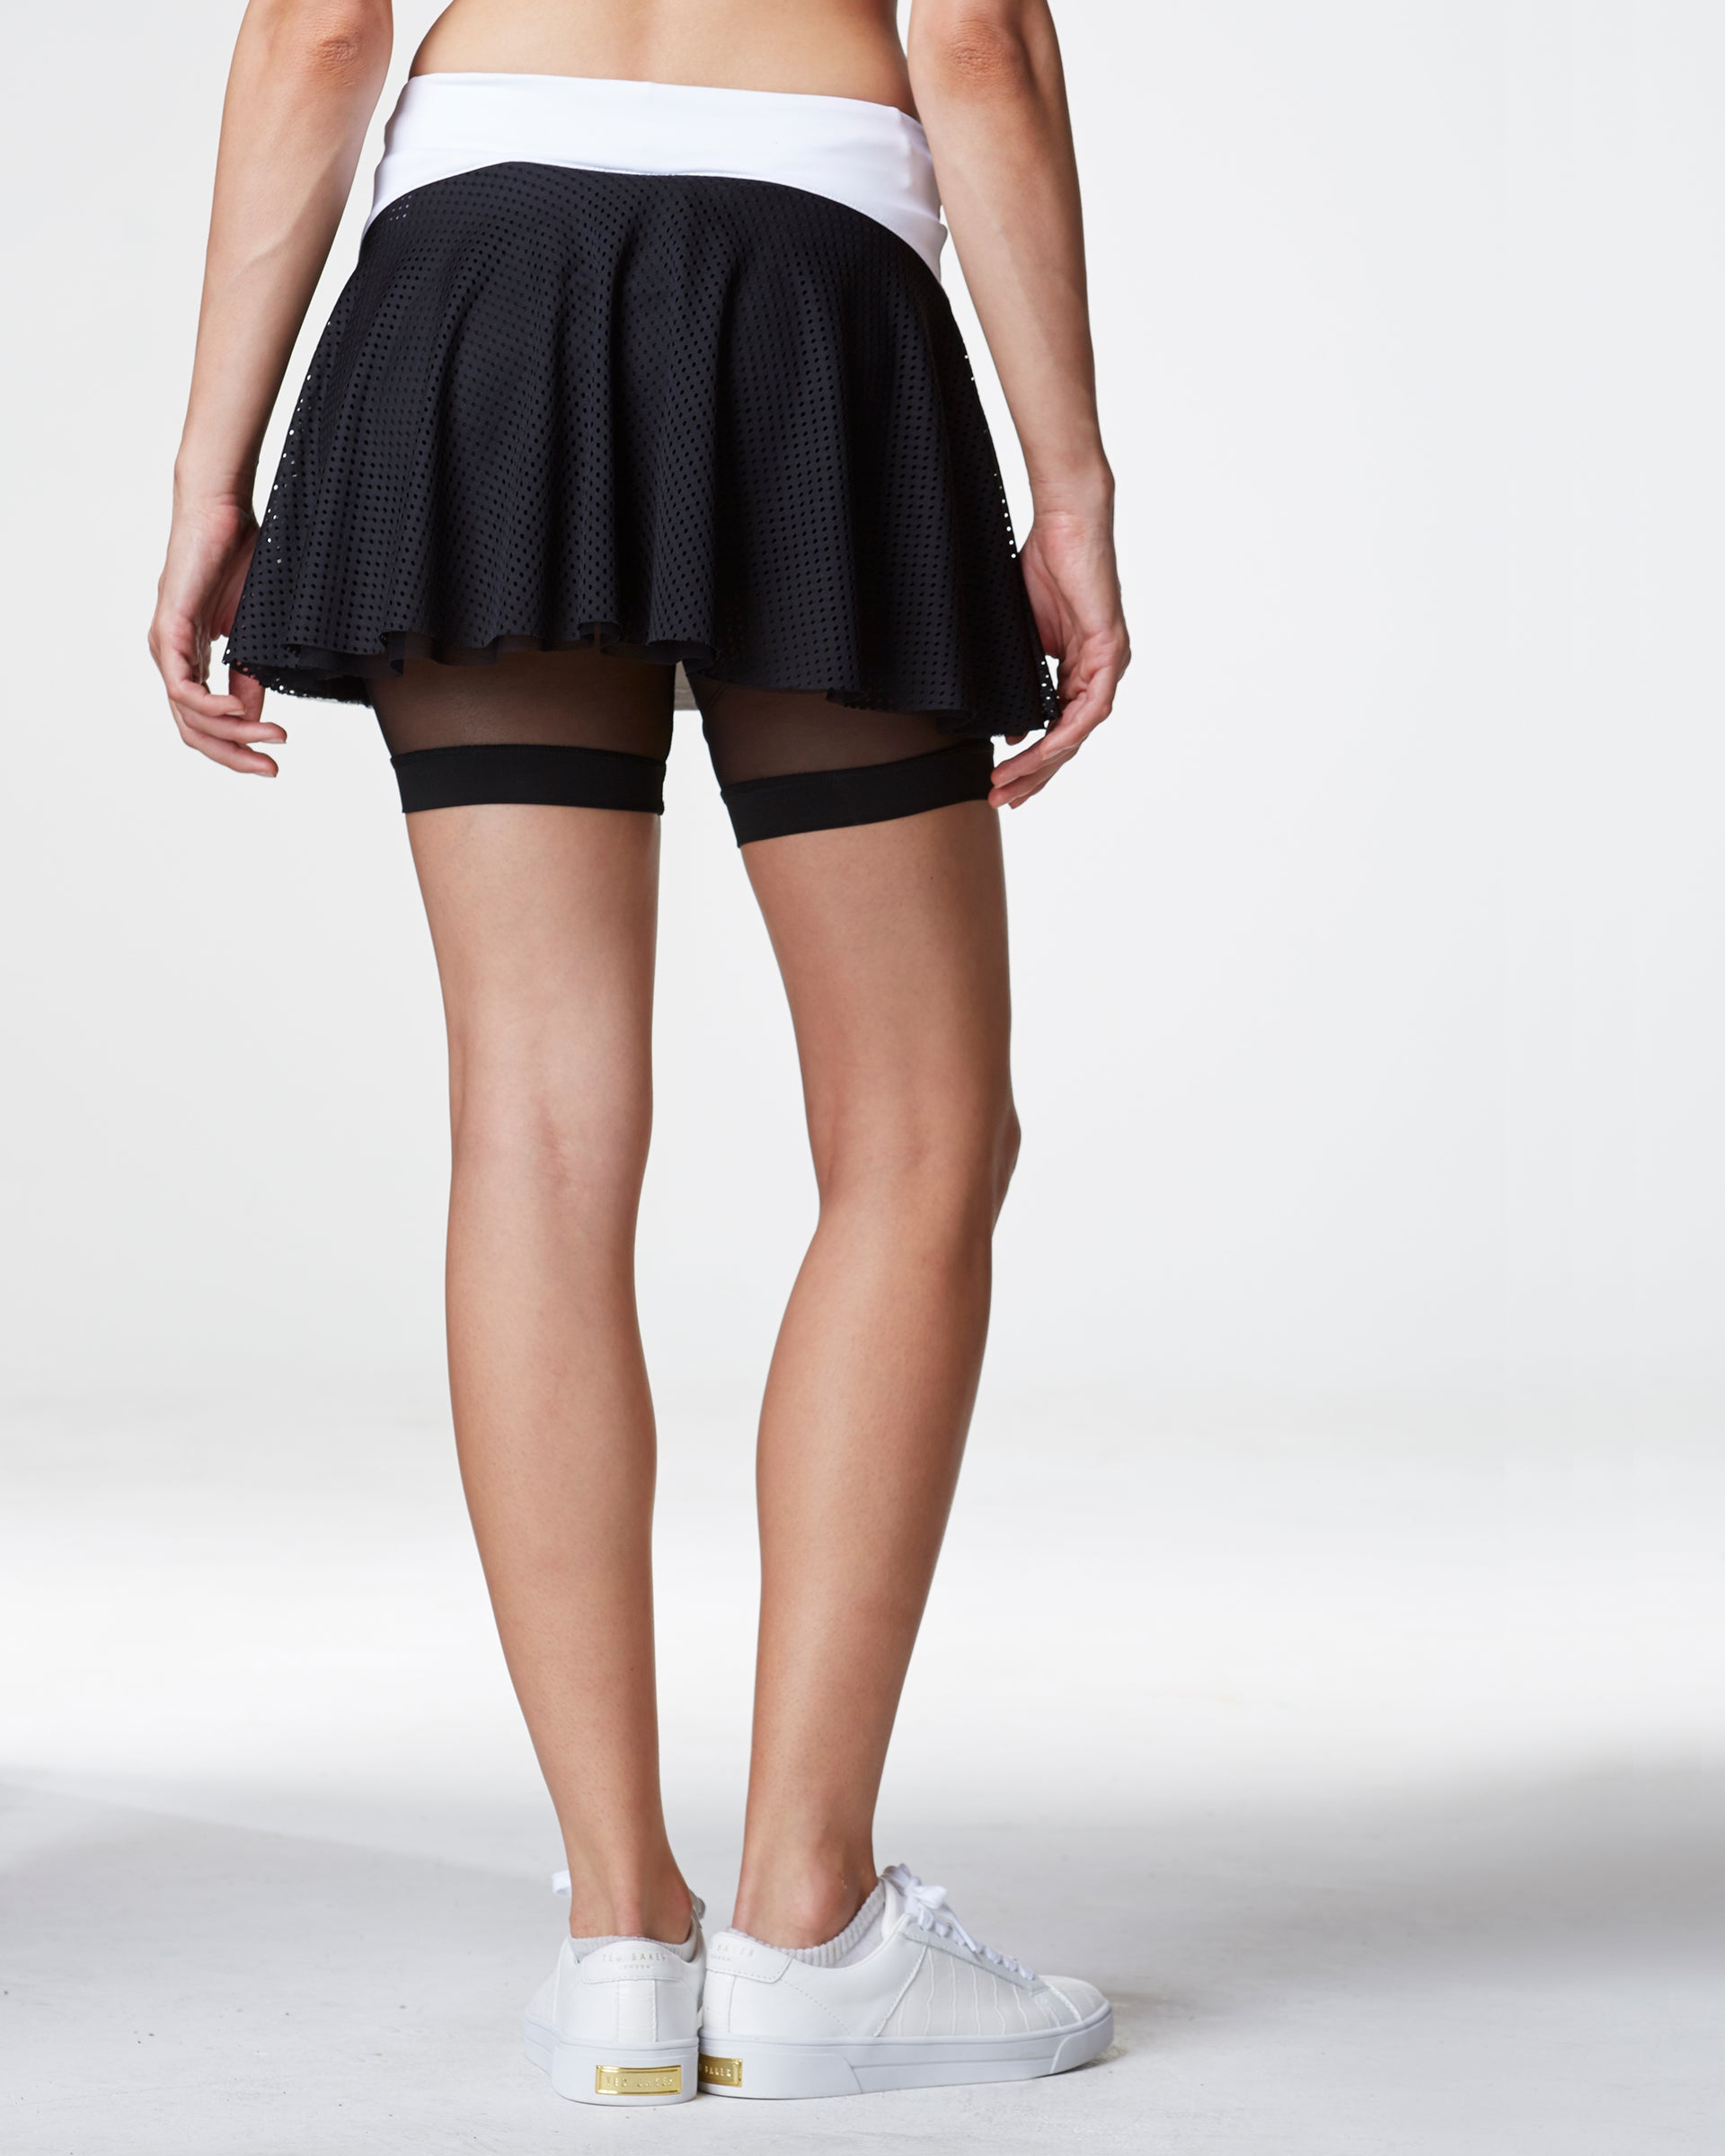 deuce-tennis-skirt-white-black